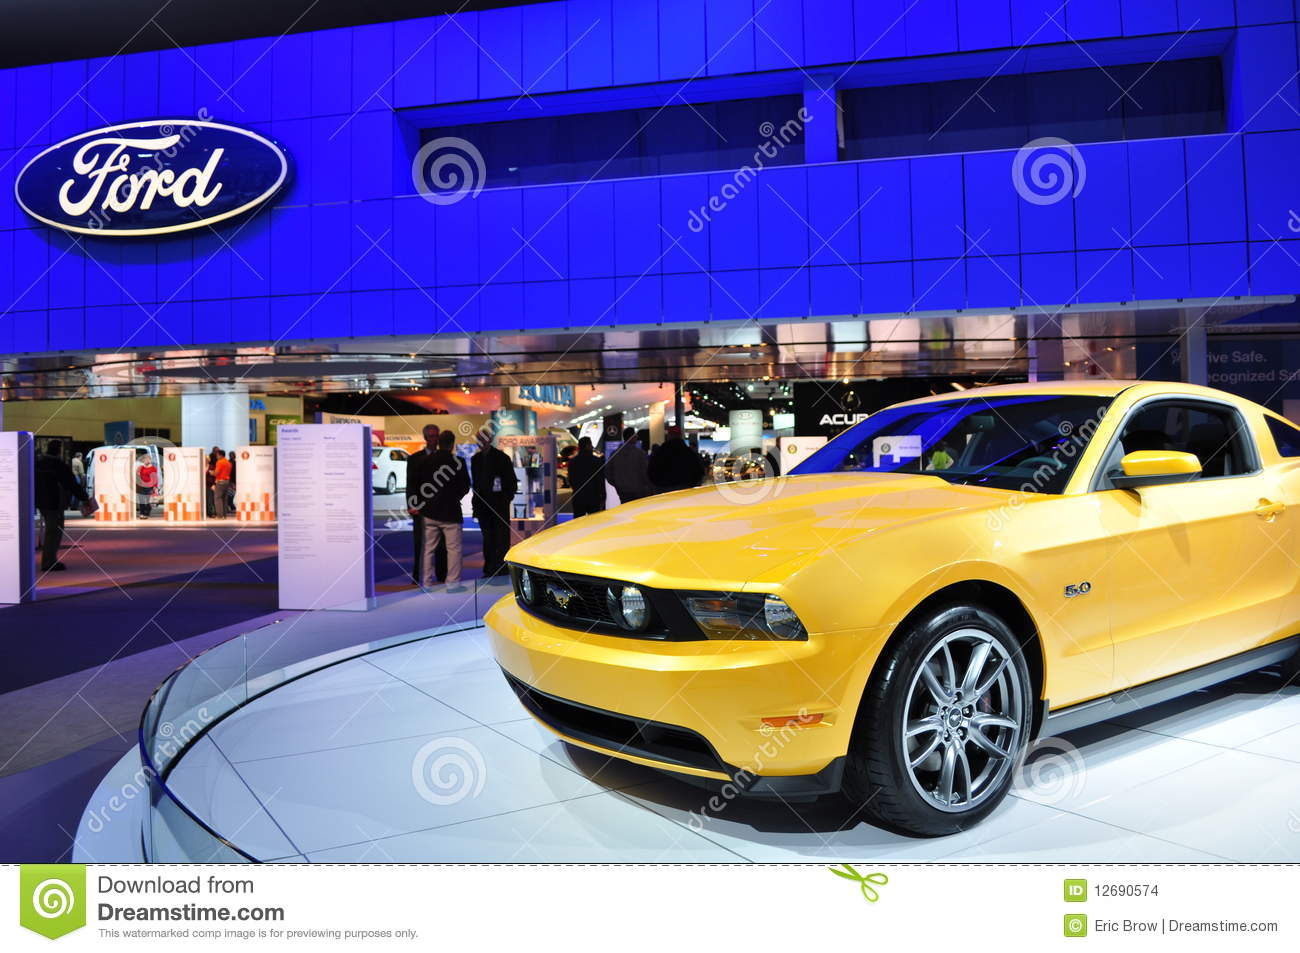 2011 ford mustang 5 0 editorial stock image image 12690574. Black Bedroom Furniture Sets. Home Design Ideas